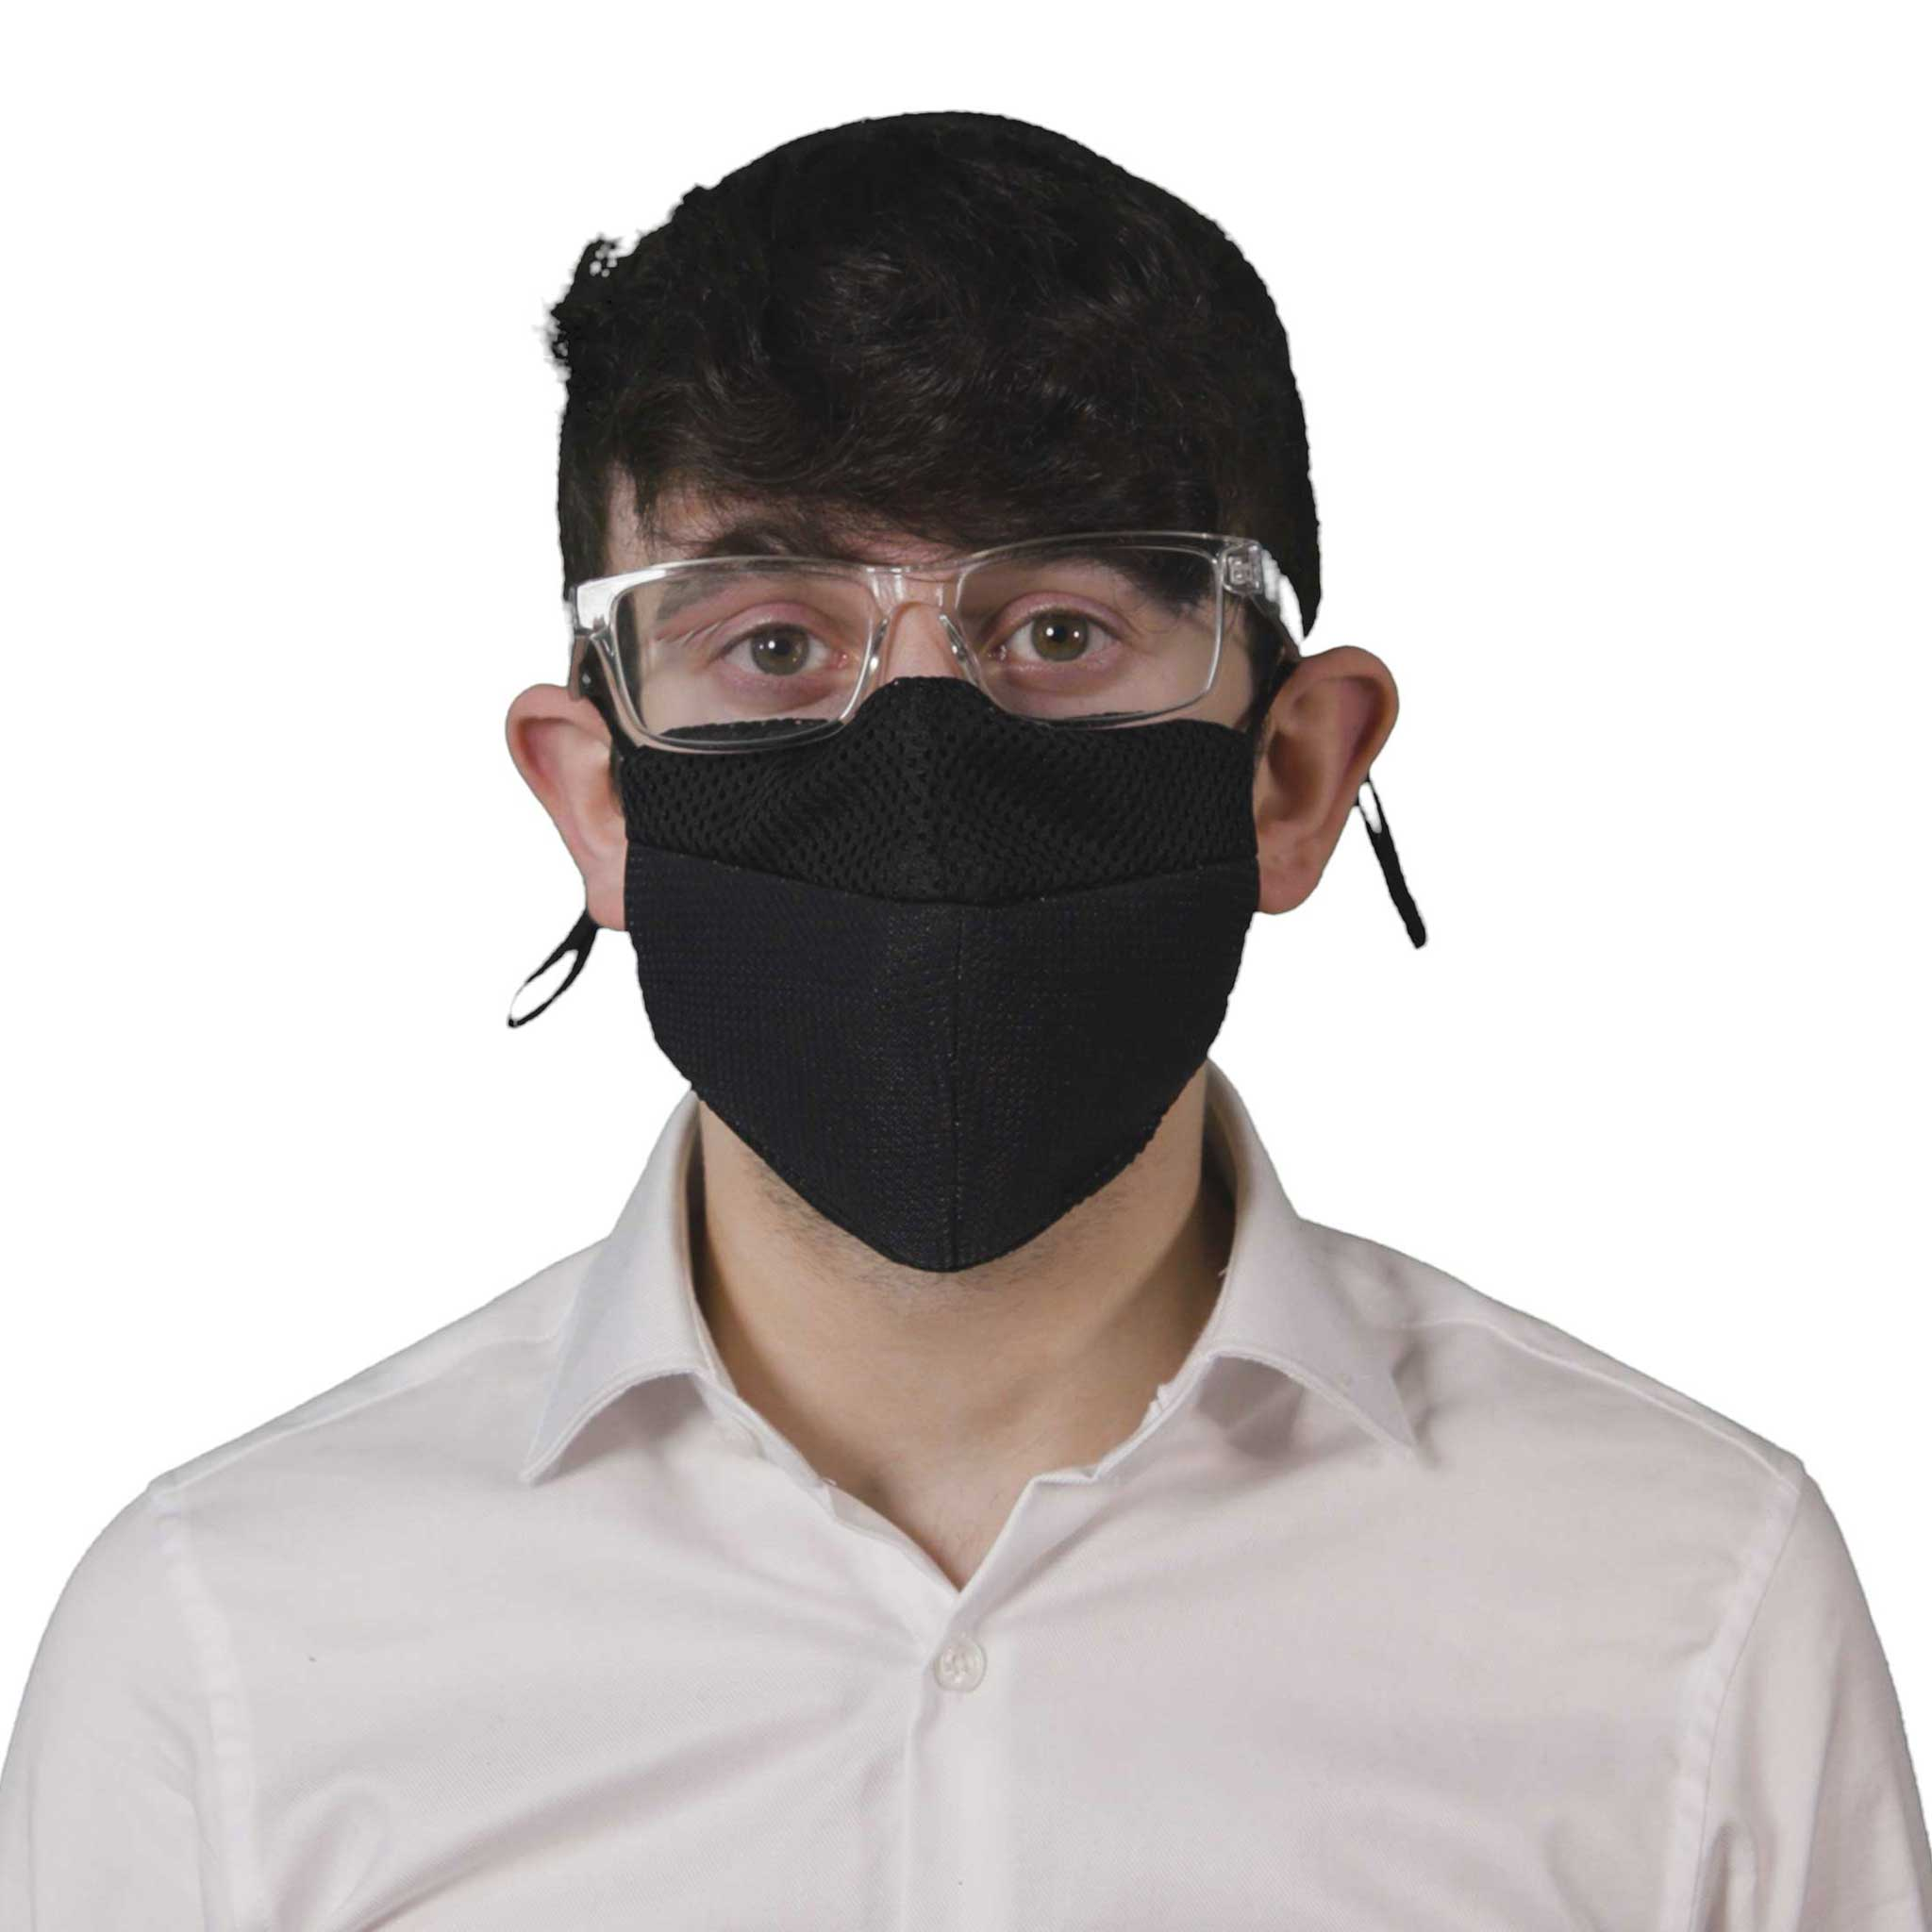 MisfitMask - the facemask that wont steam up your glasses., Protective Masks - Image 4